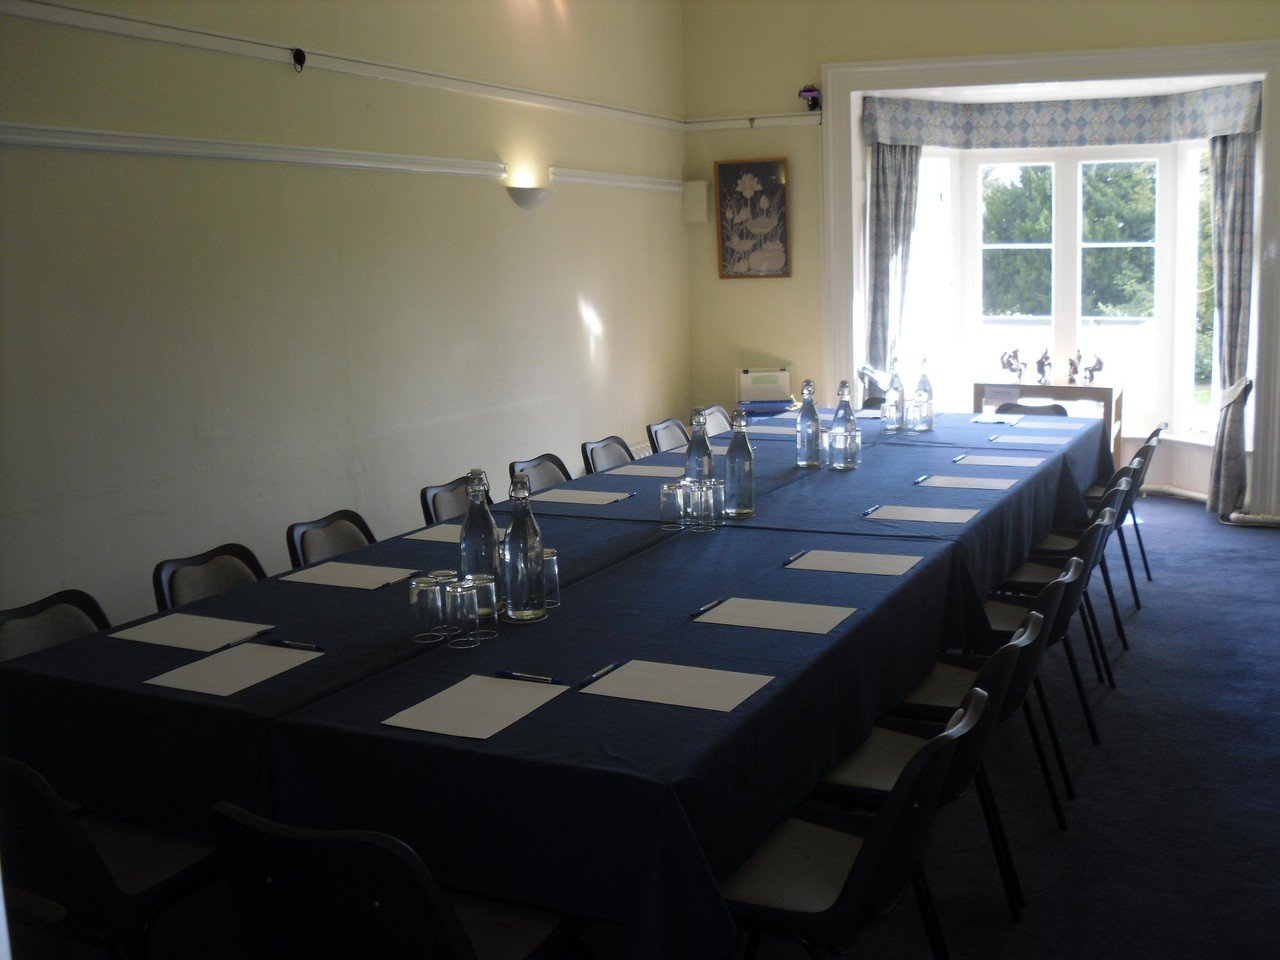 Birmingham training rooms Meetingraum Woodbrooke - Hugh Lawson Room image 0